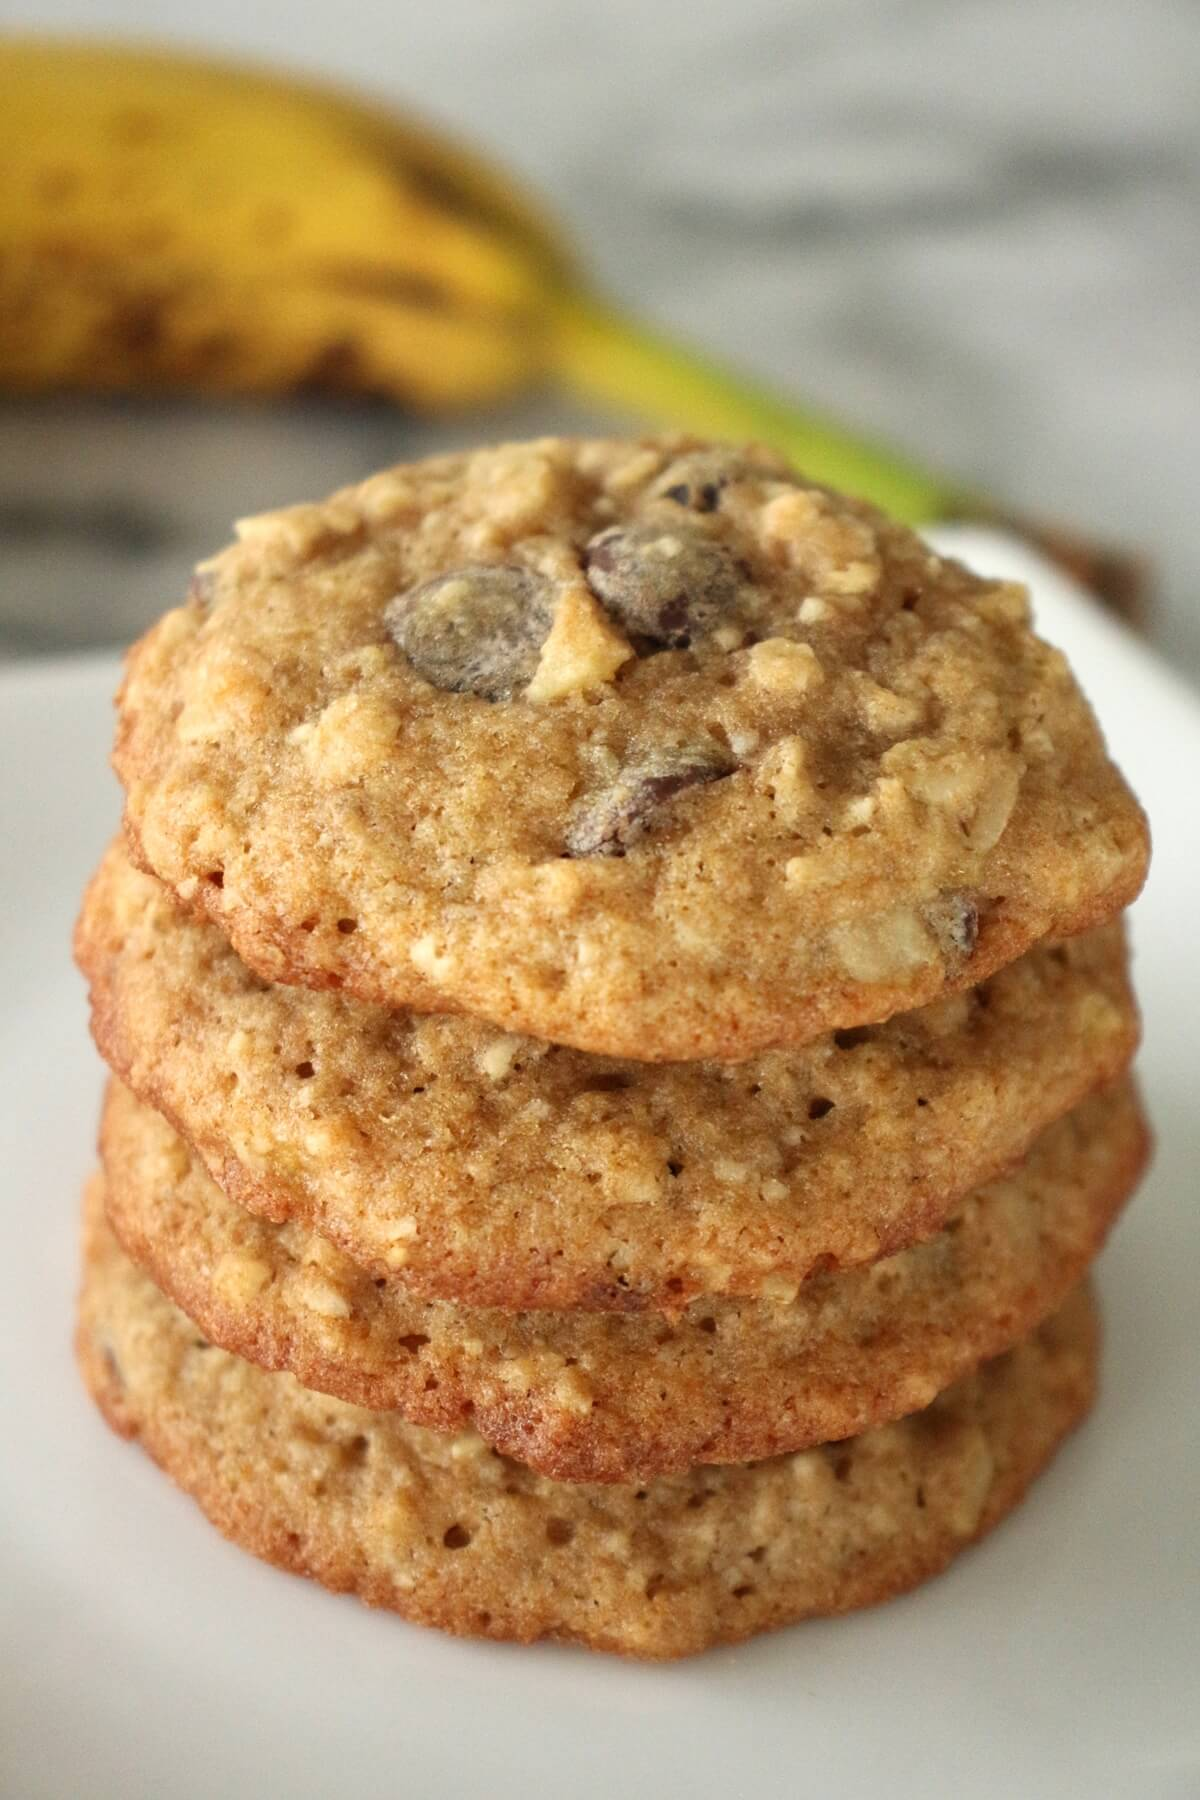 A stack of banana walnut chocolate chip cookies on a white square plate with a banana in the background